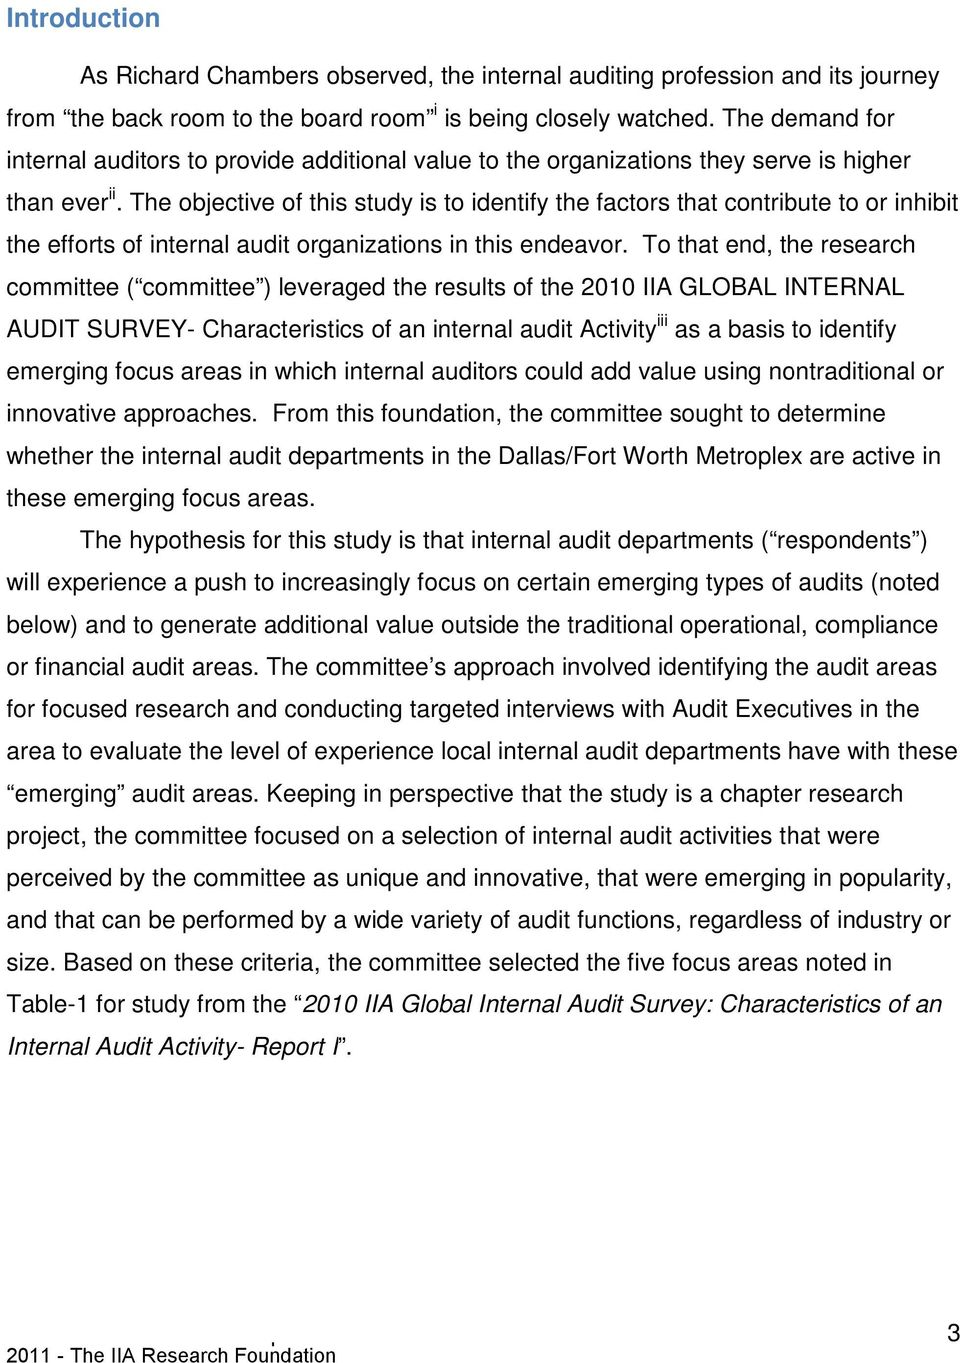 The objective of this study is to identify the factors that contribute to or inhibit the efforts of internal audit organizations in this endeavor.